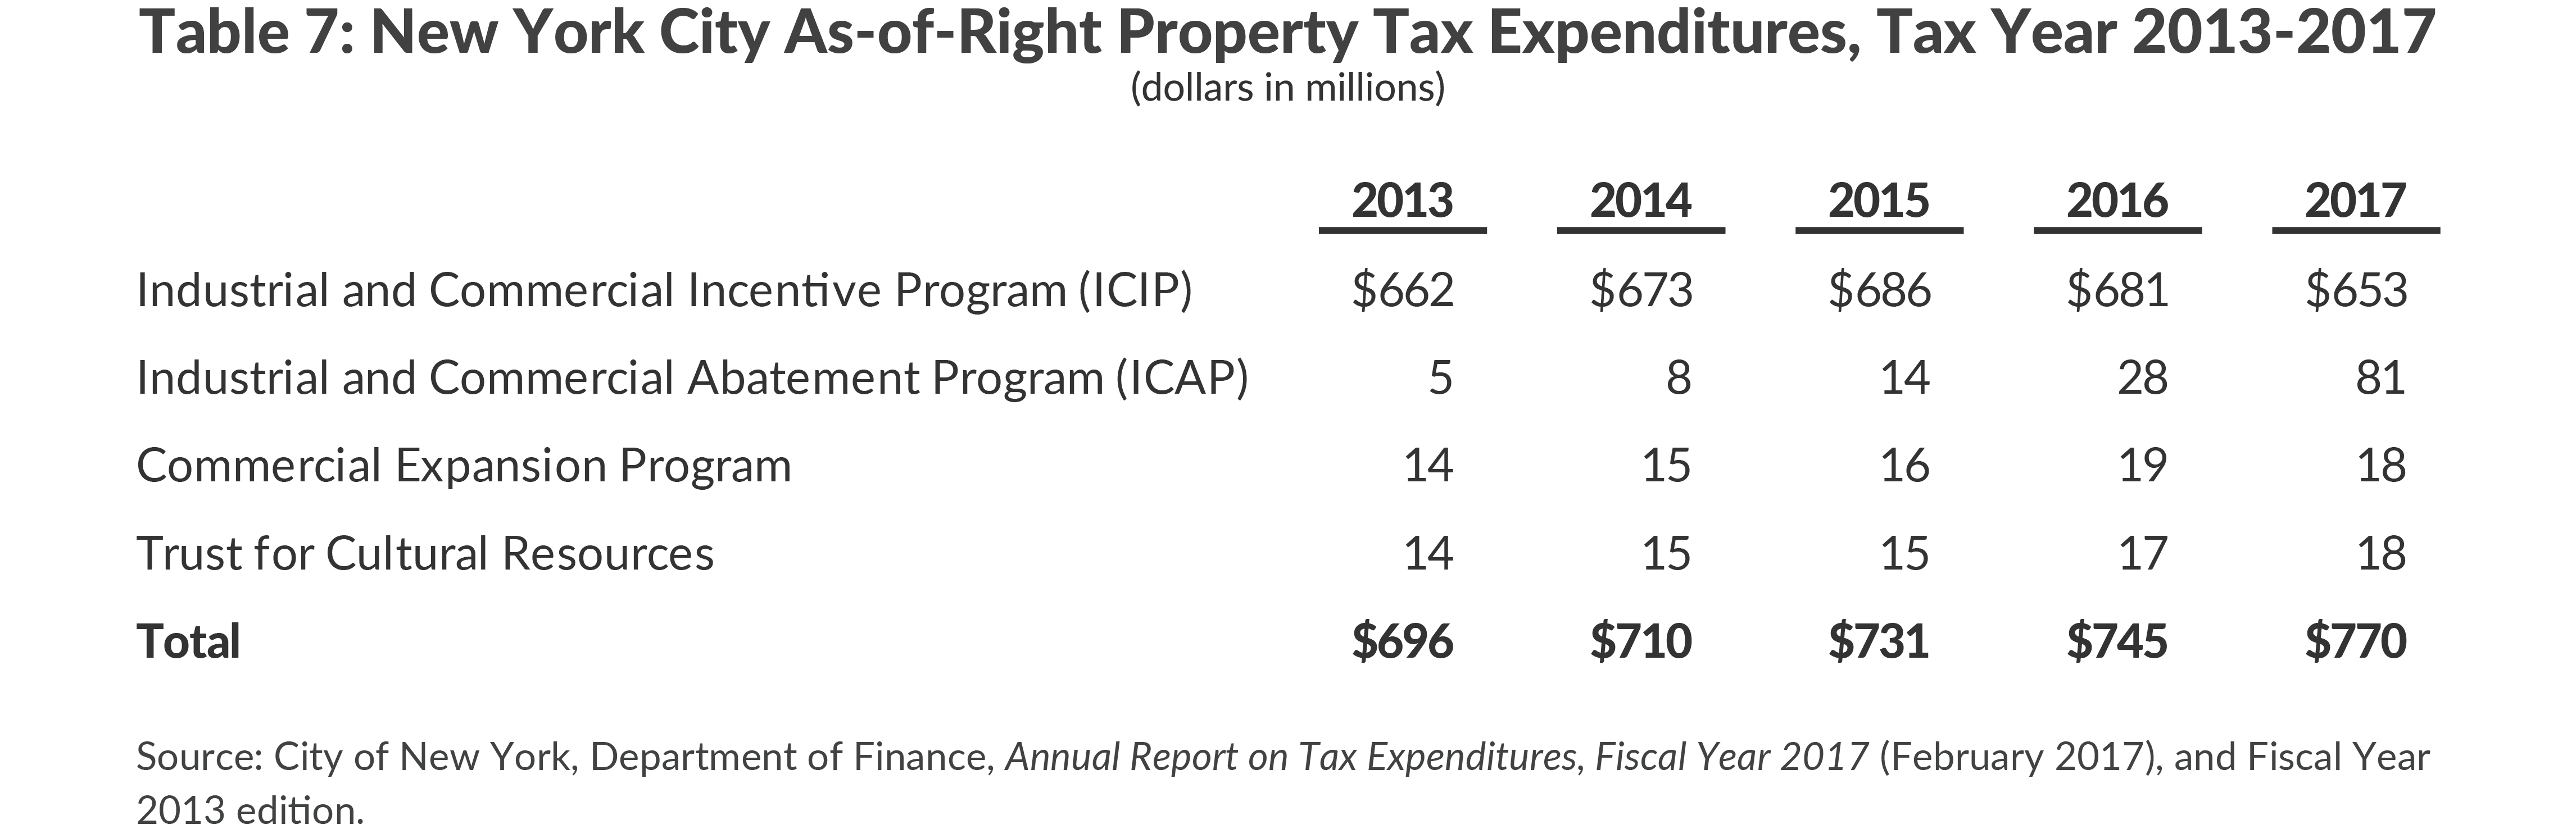 New York City As-of-Right Property Tax Expenditures, Tax Year 2013-2017